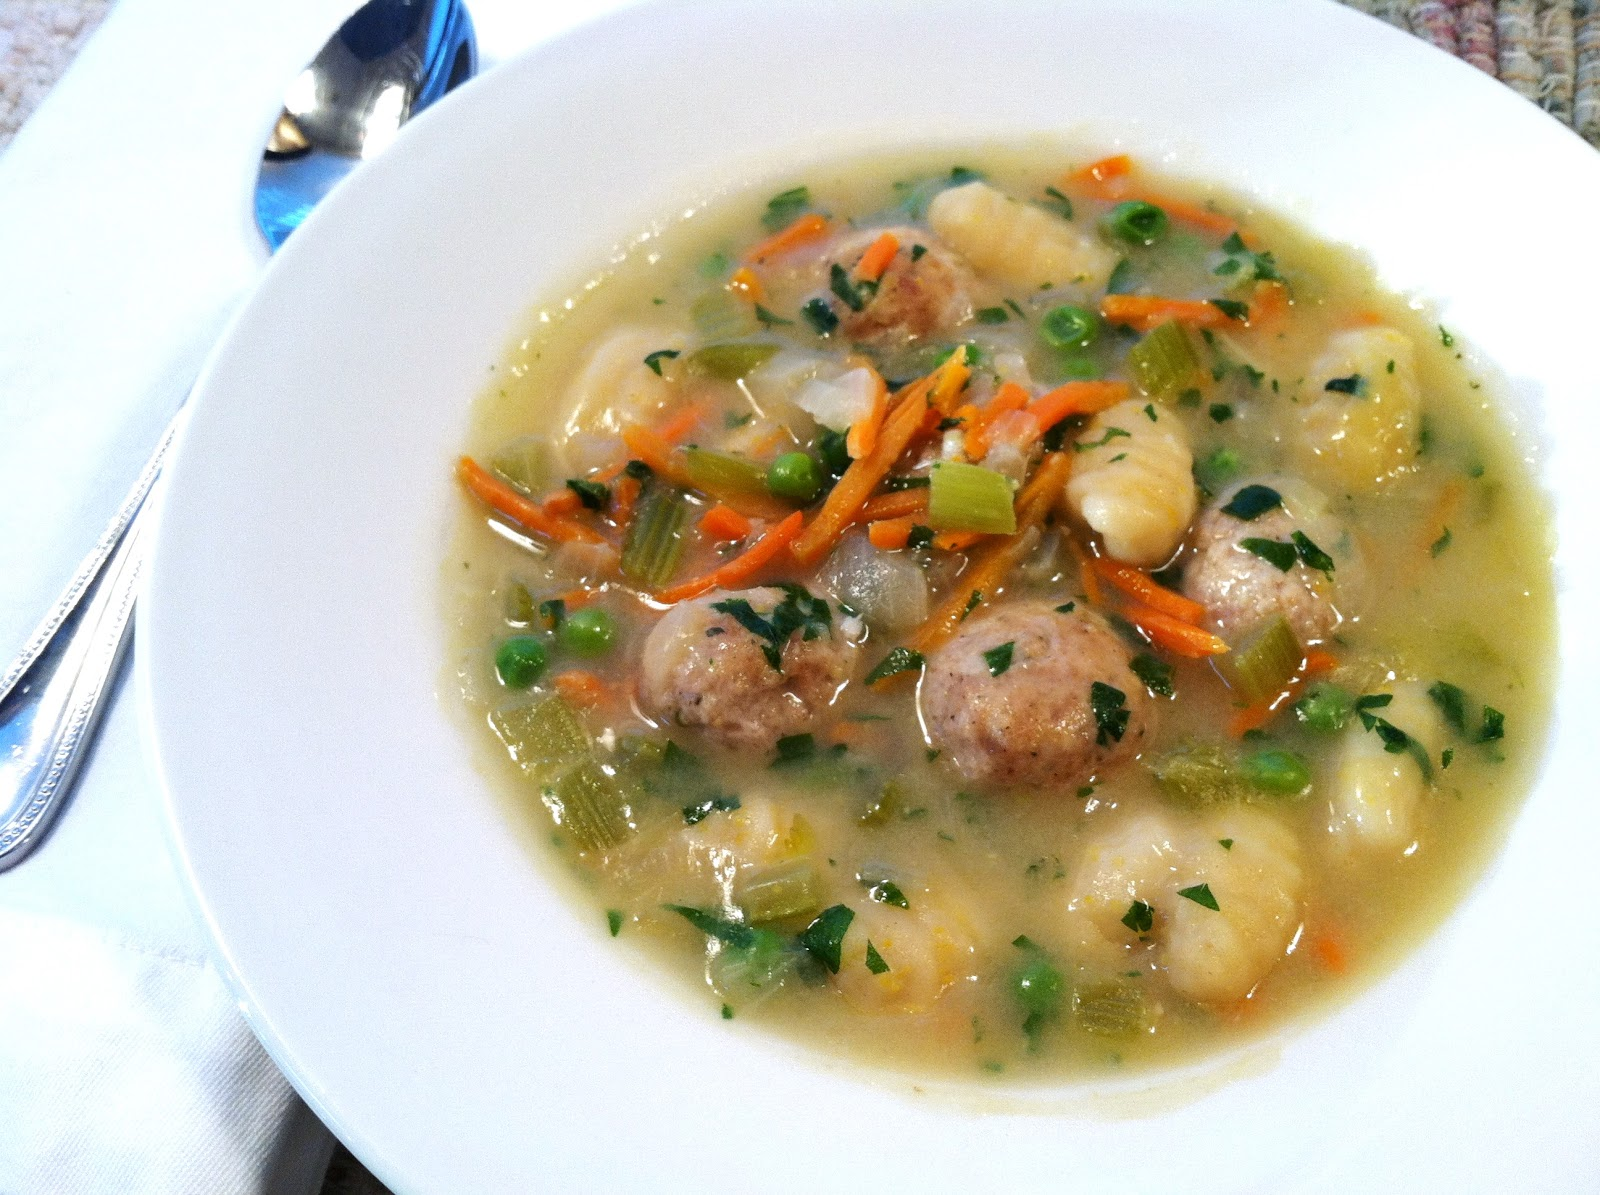 Italian Wedding Soup with Chicken Meatballs and Gnocchi.